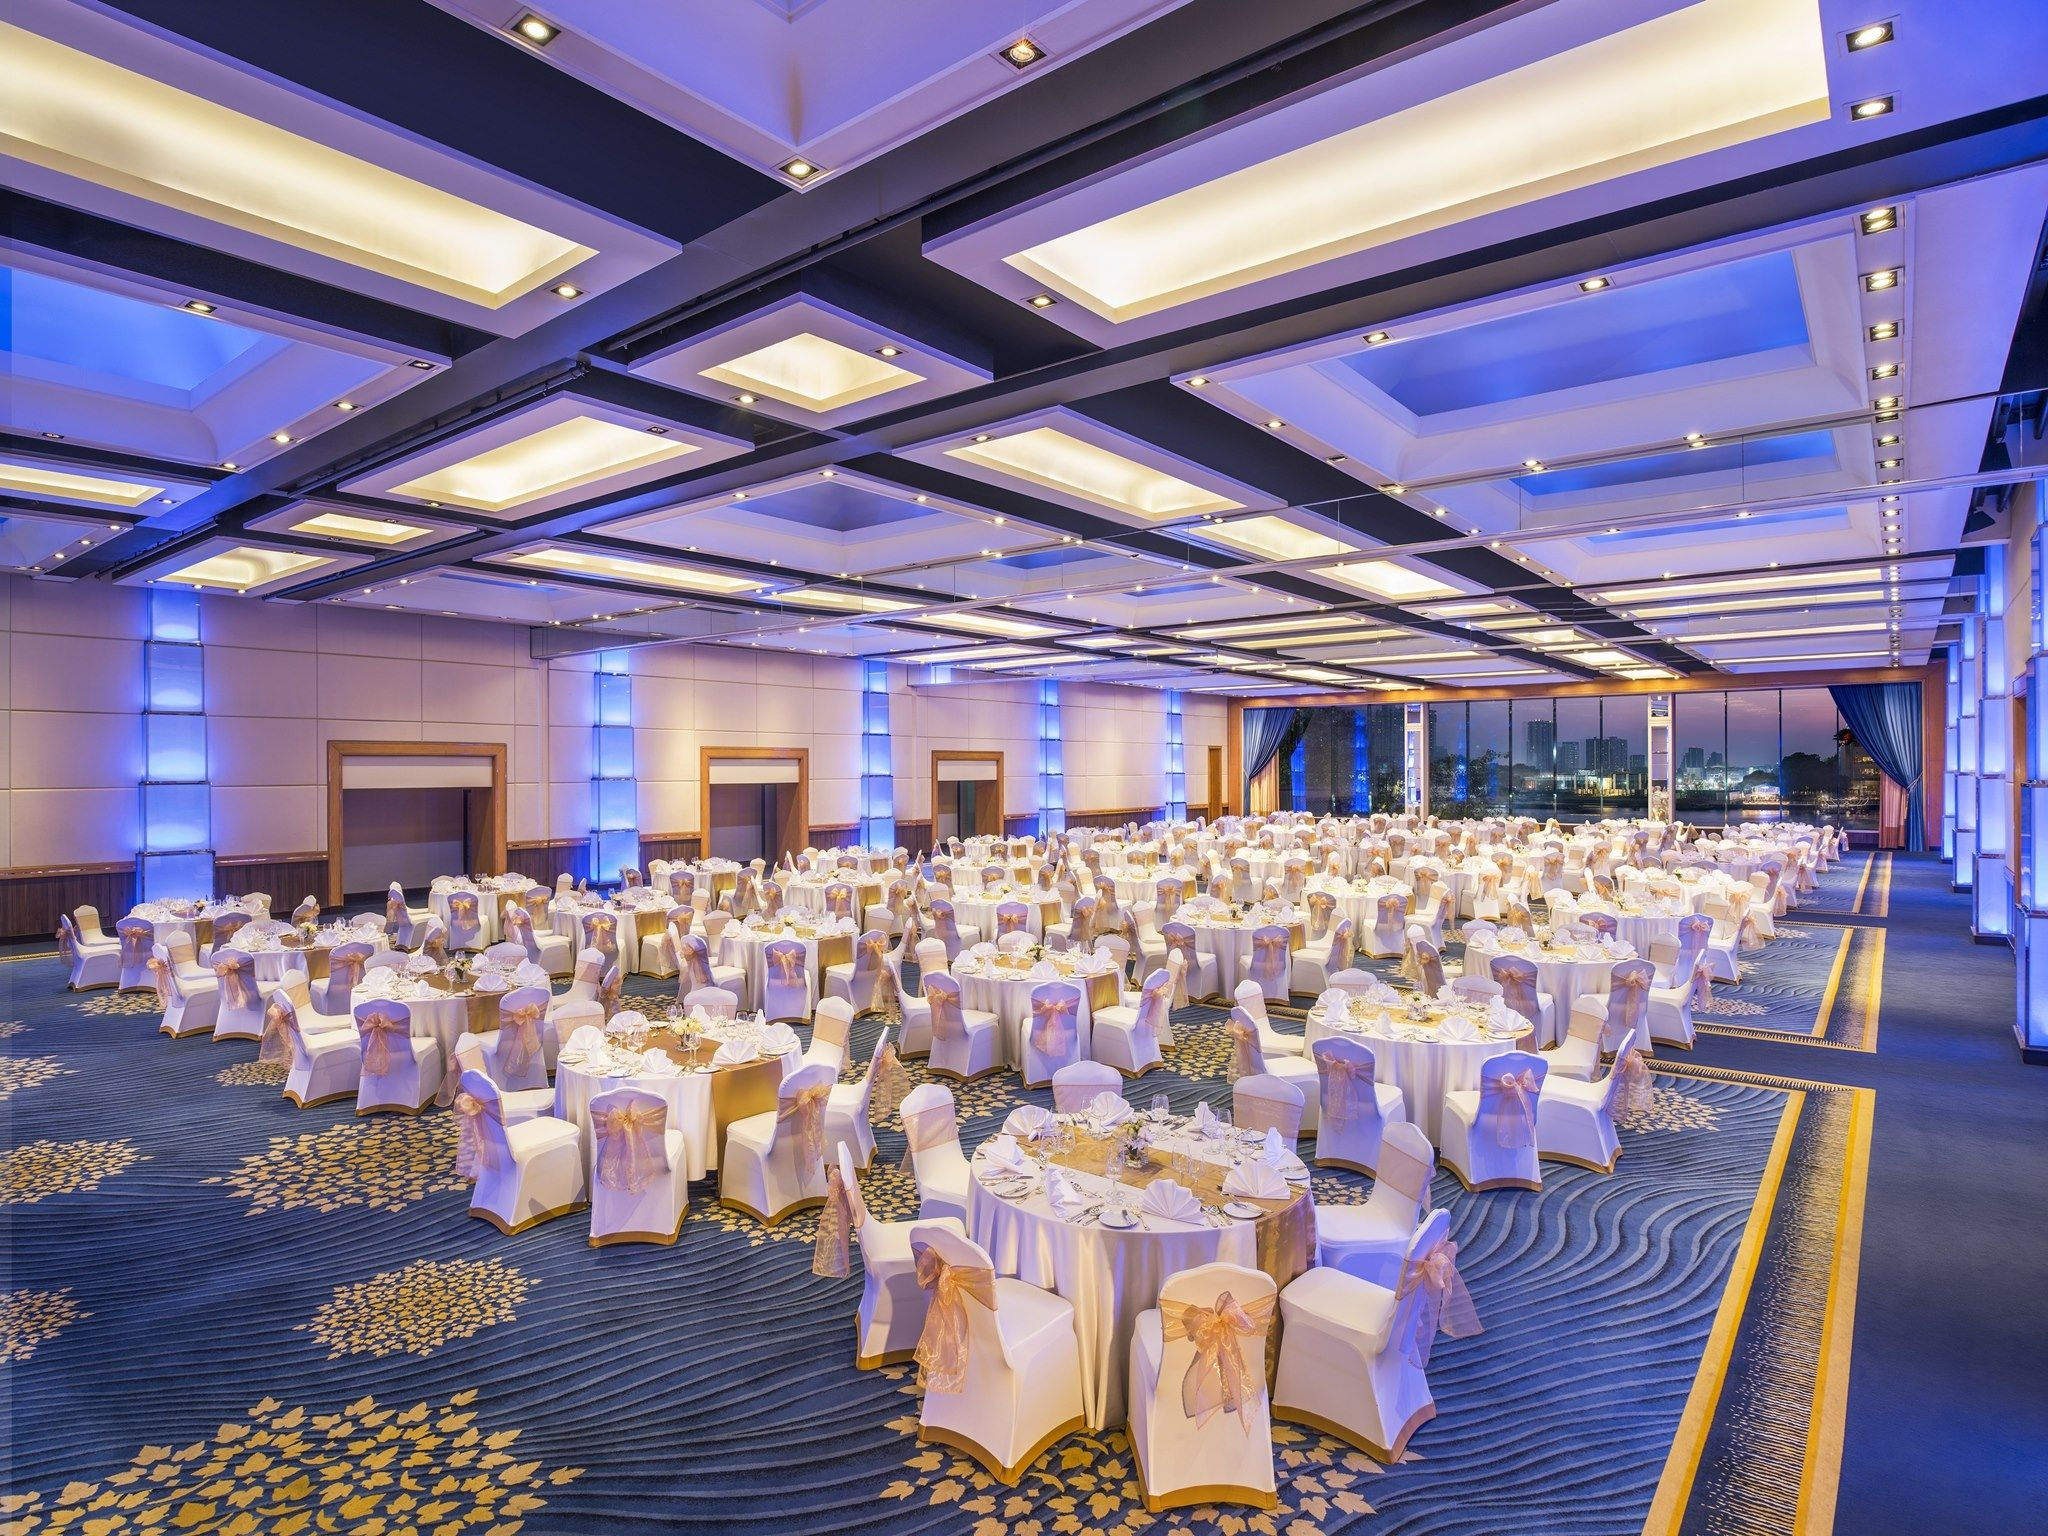 Venues at Royal Orchid Sheraton Hotel Bangkok